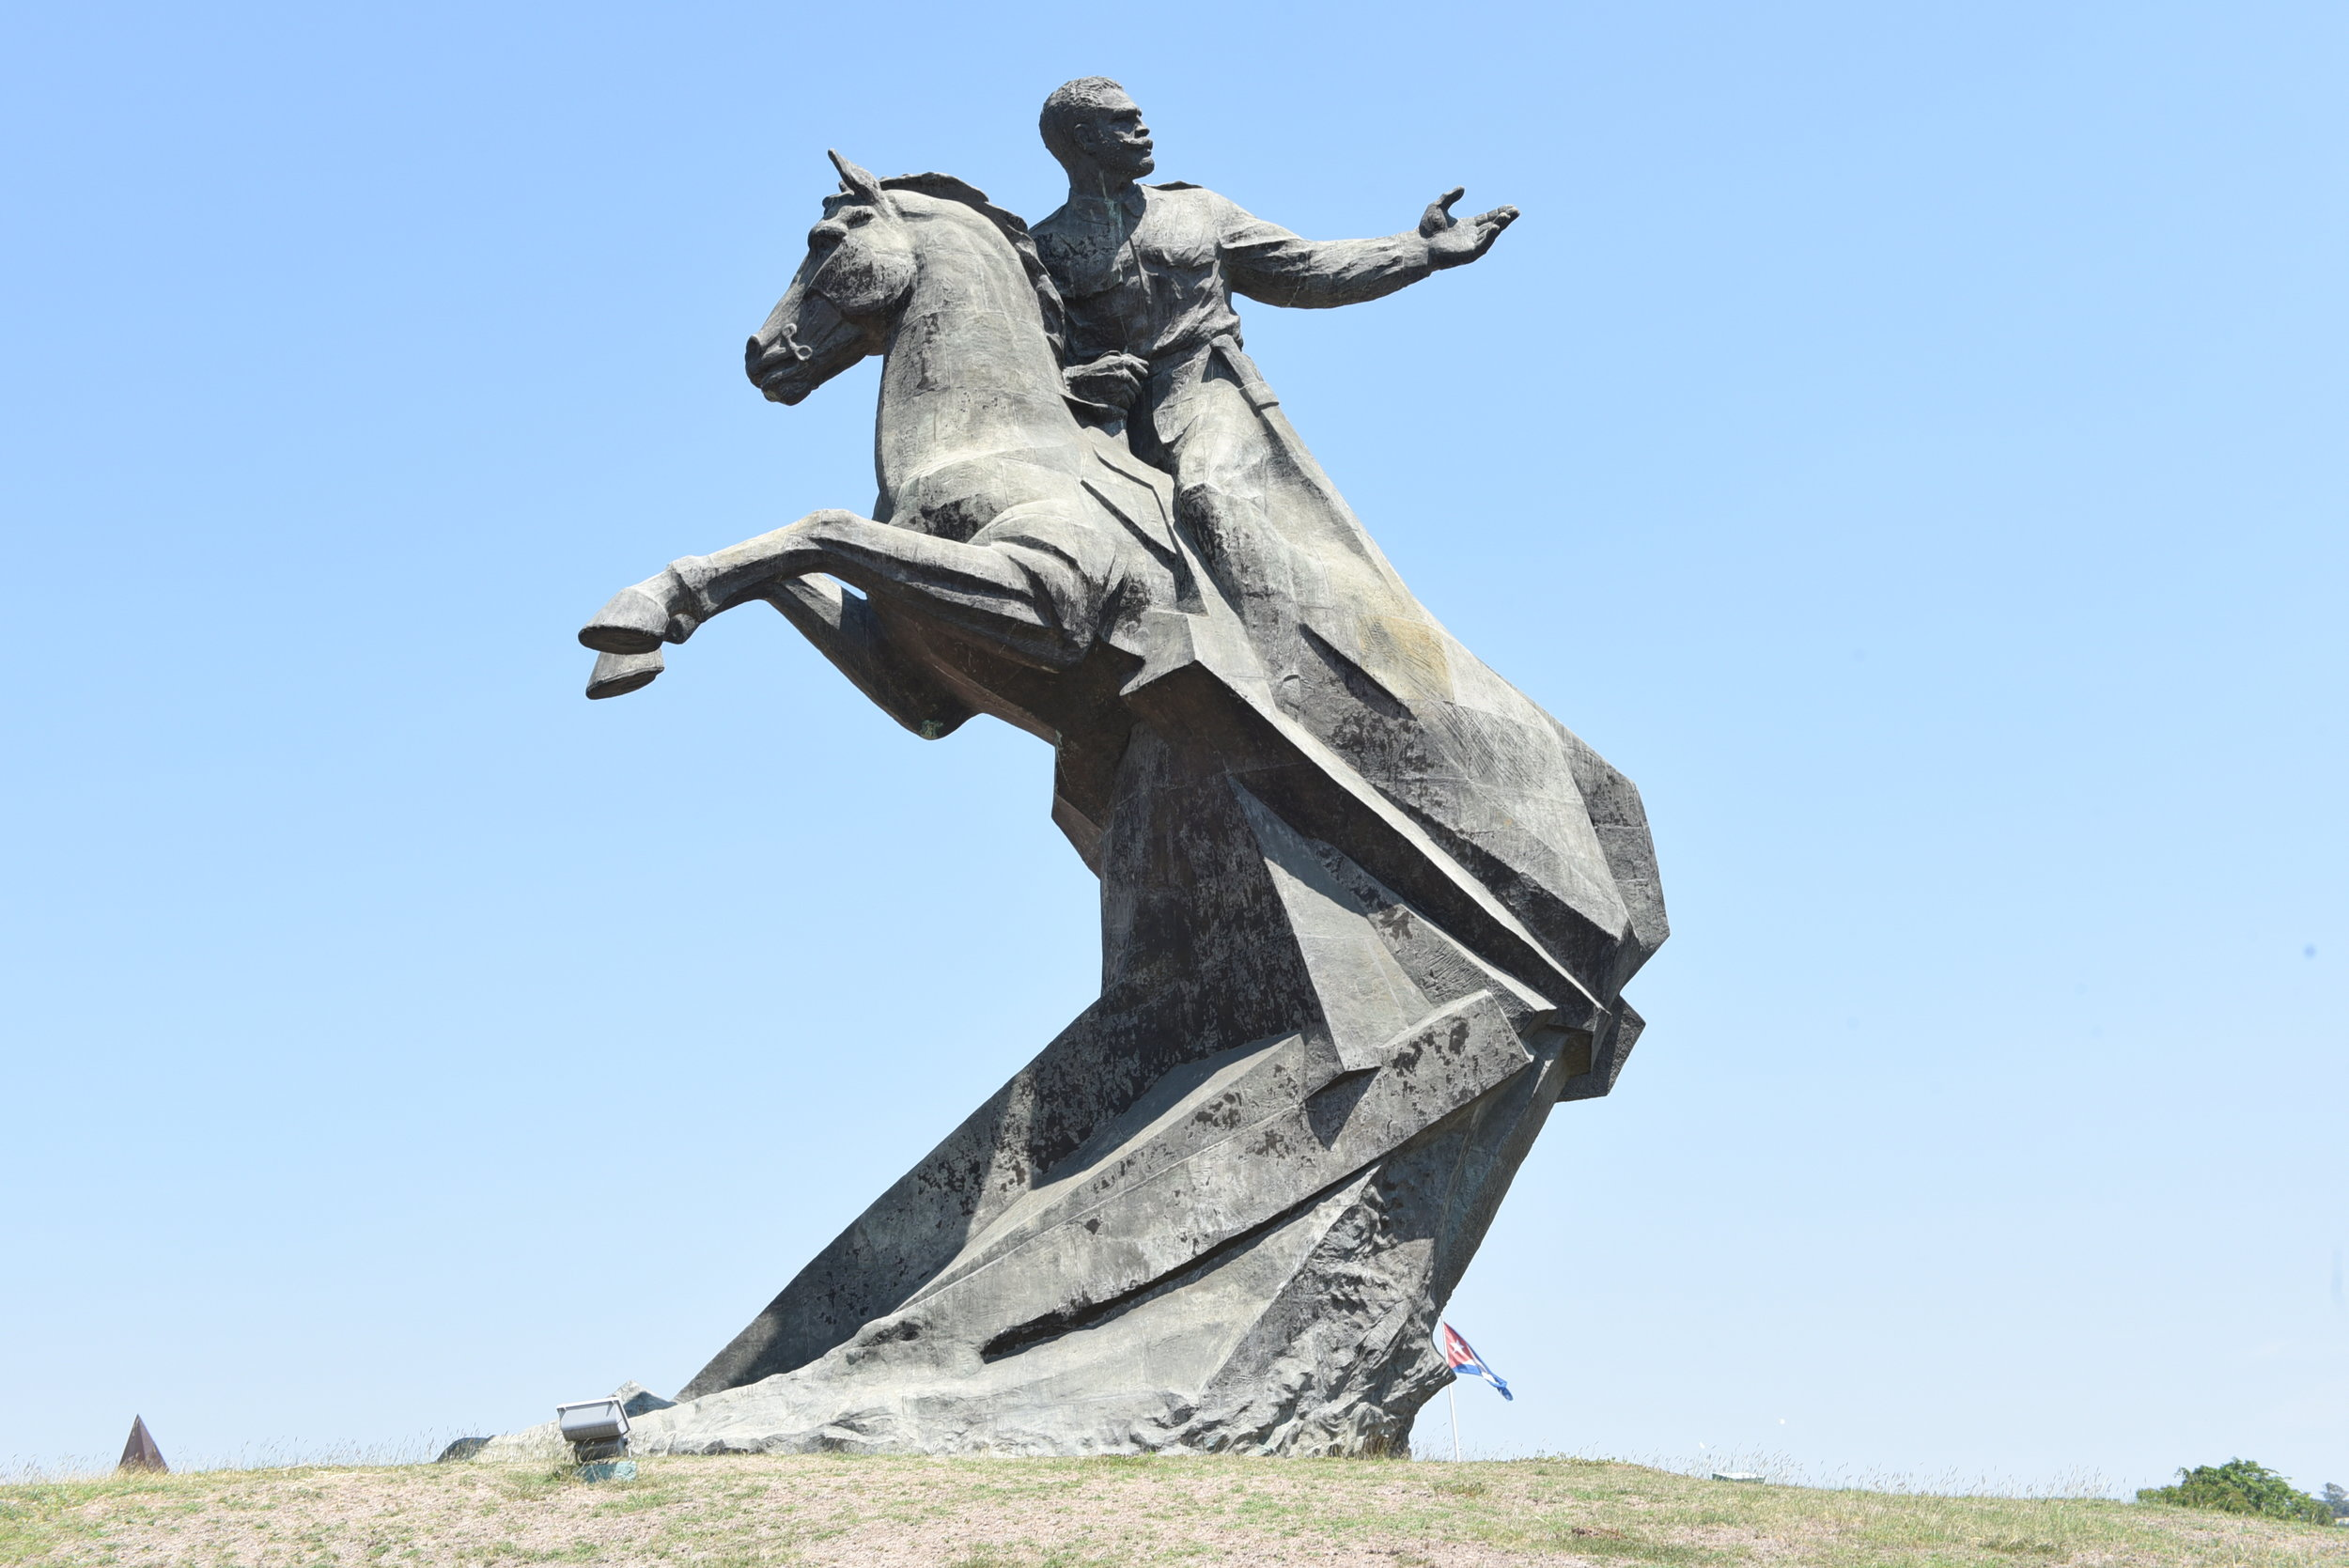 The sculpture of Antonio Maceo on horseback